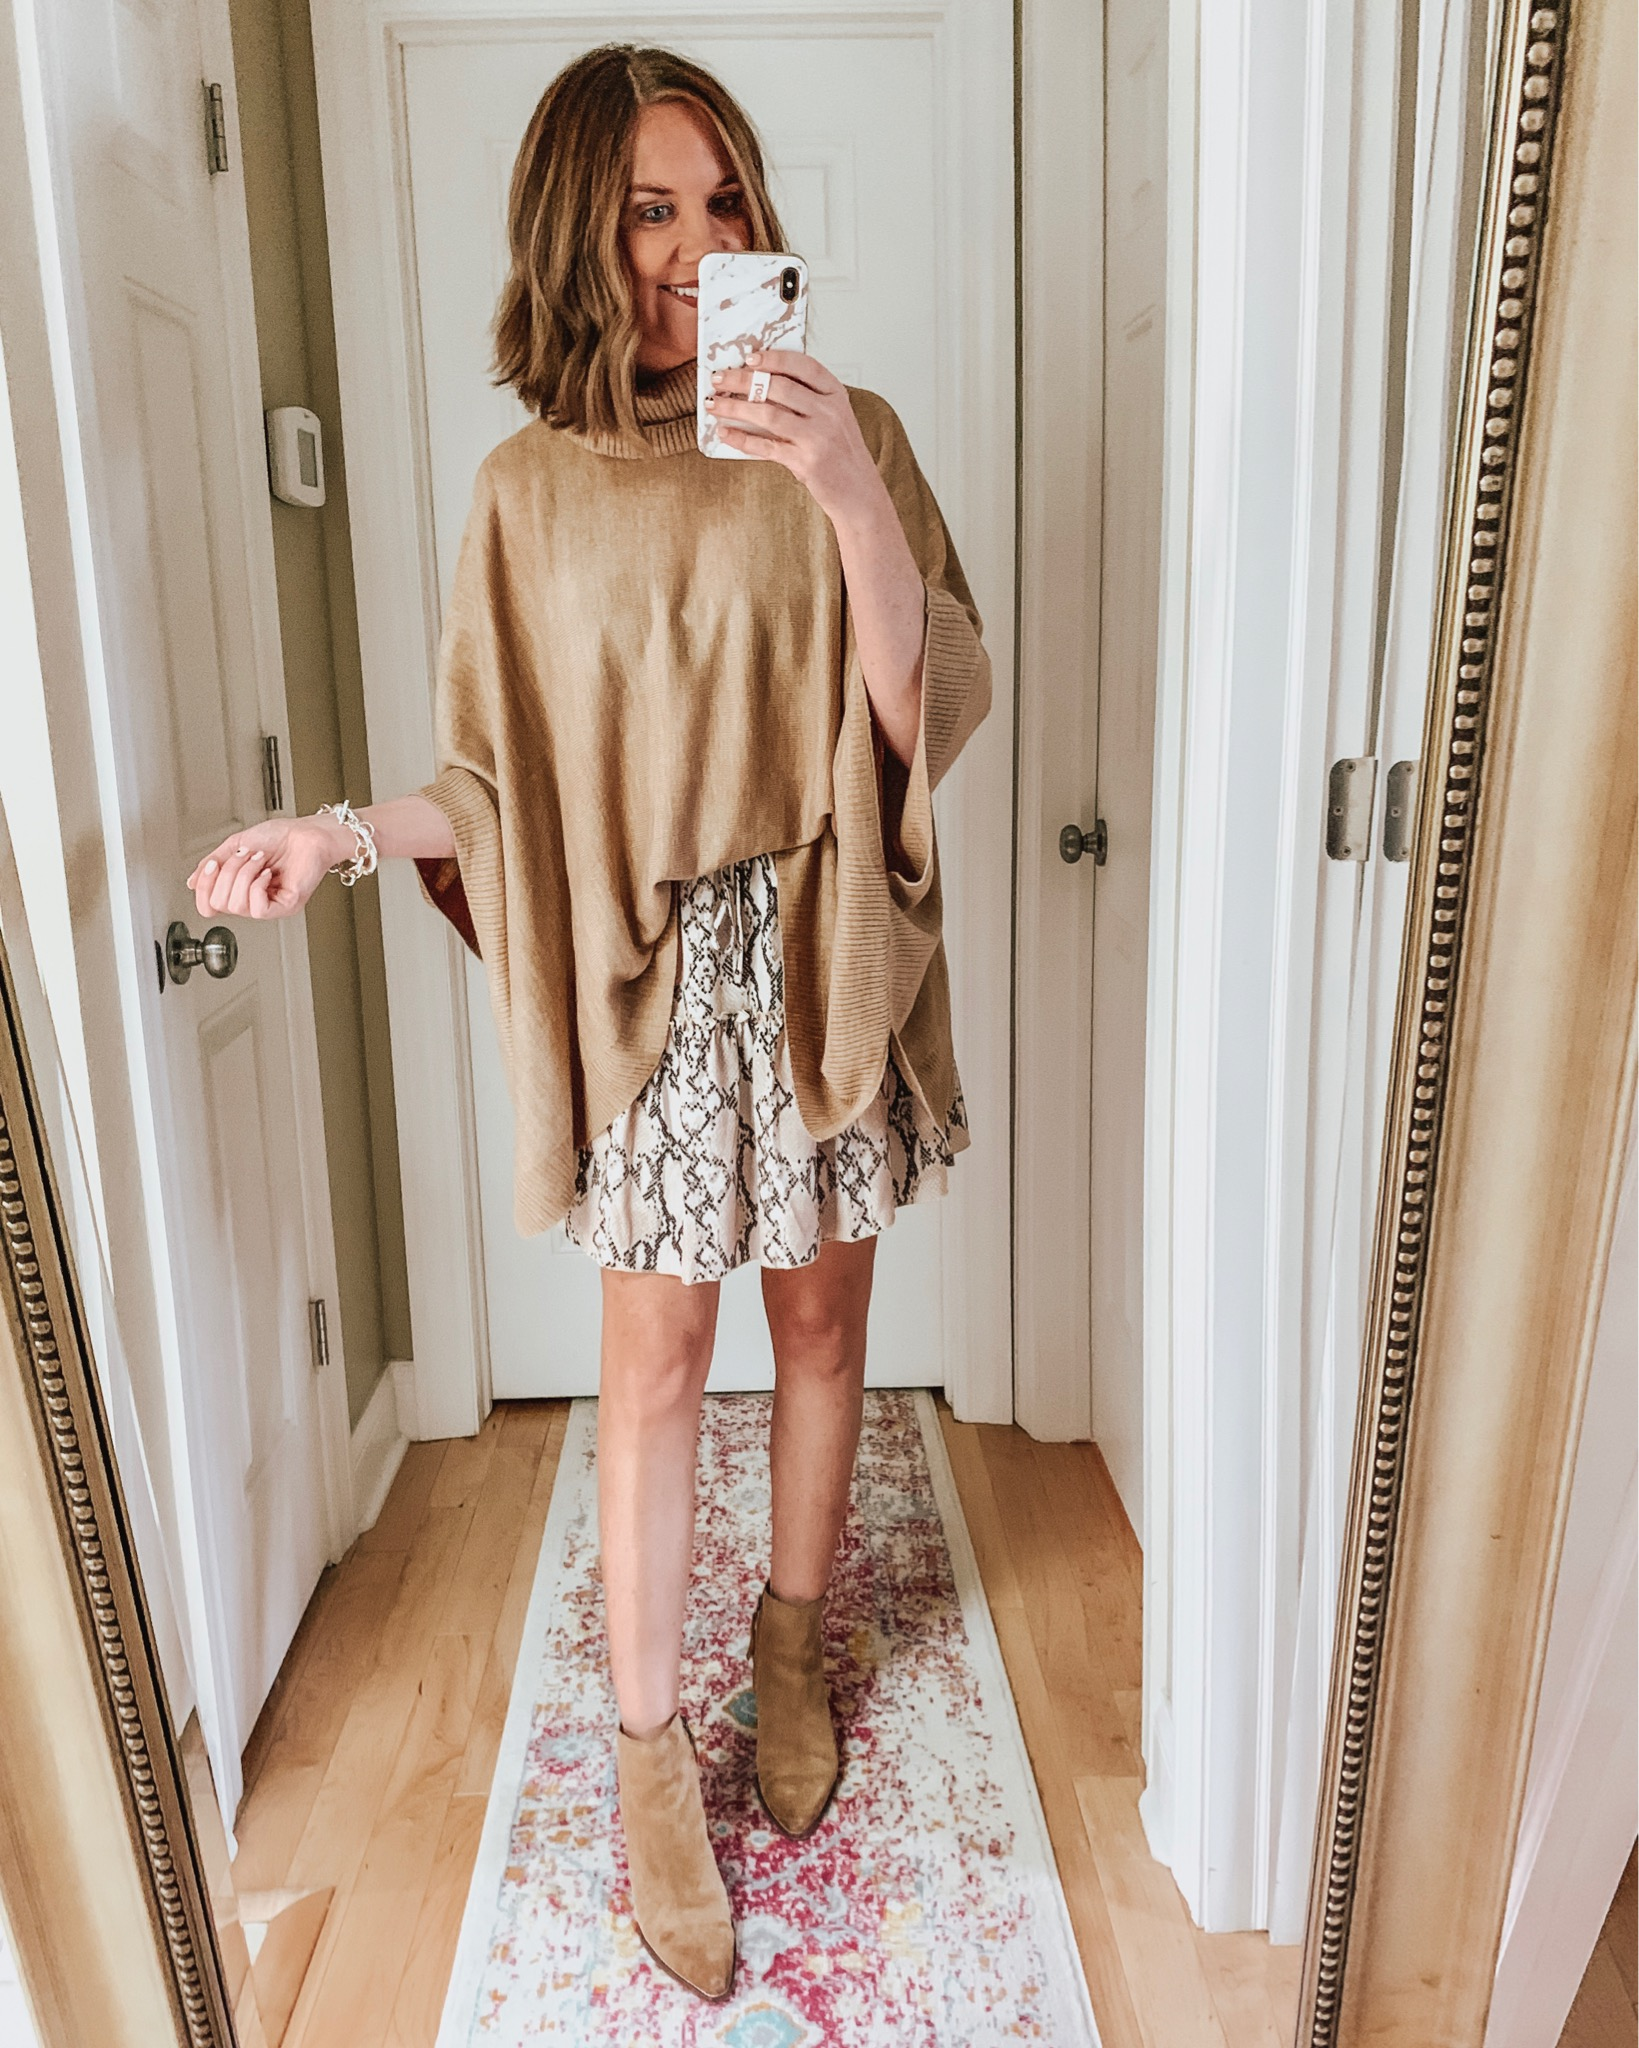 styling the Amazon mini skirt for fall, tiered skirt, poncho sweater, snakeskin print, booties, spotted skirt